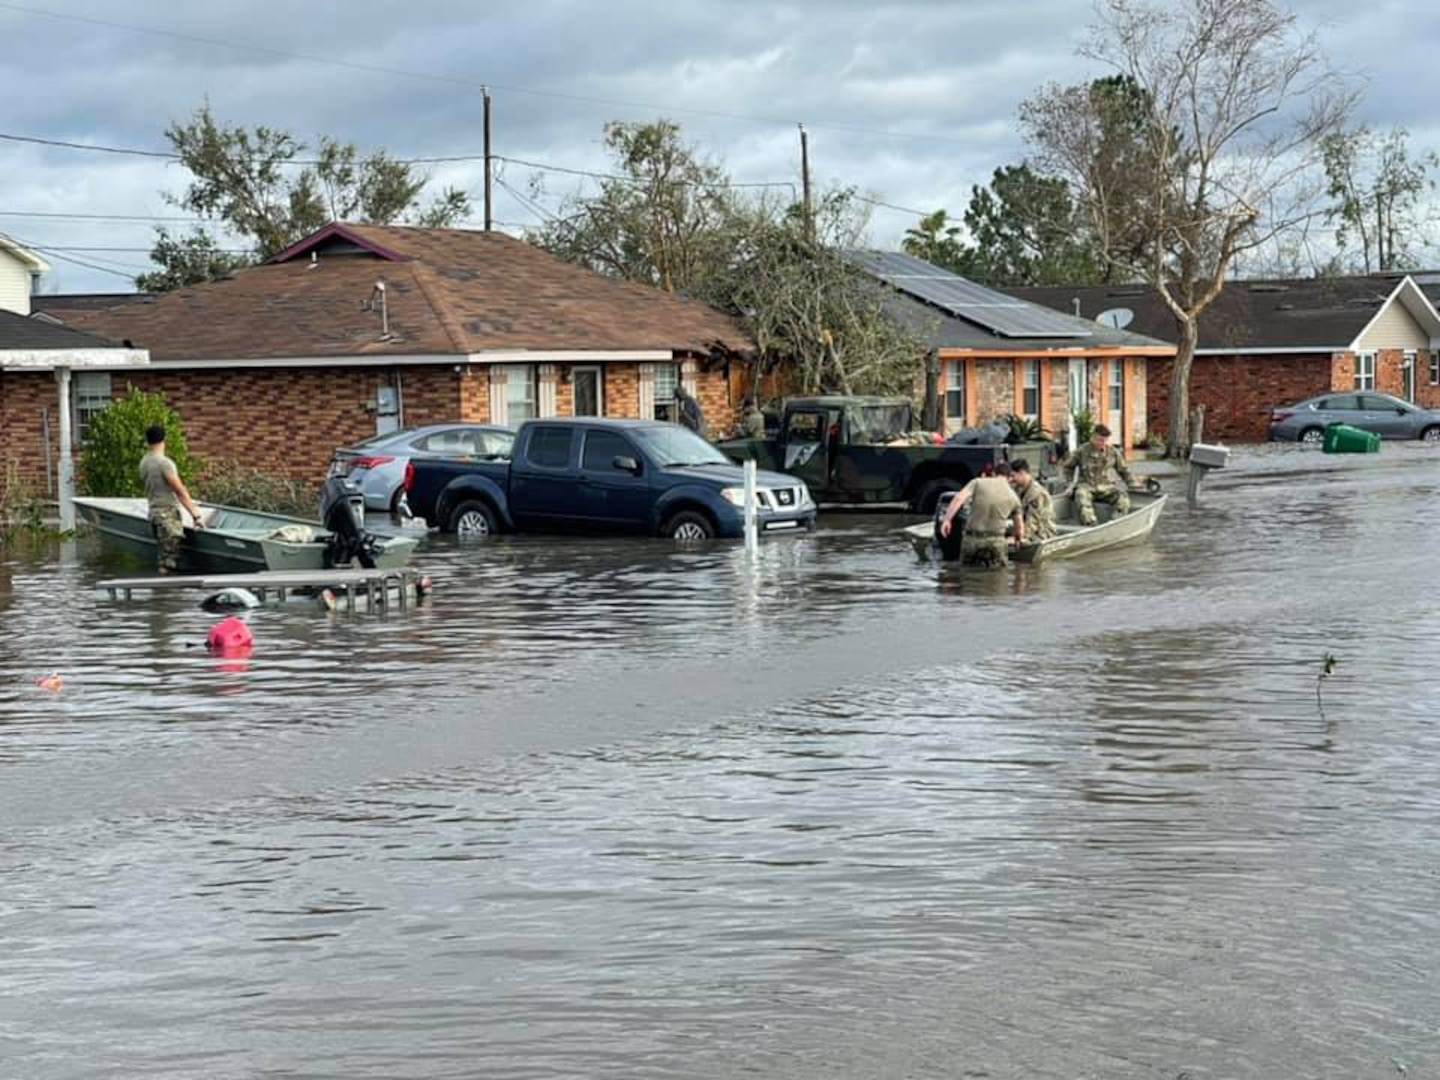 The Louisiana National Guard has rescued 359 people and 55 pets either by high-water vehicles, by boats or by air during the aftermath of Hurricane Ida, which made landfall in south Louisiana Aug. 29, 2021, as a Category 4 storm with 150 mph winds.